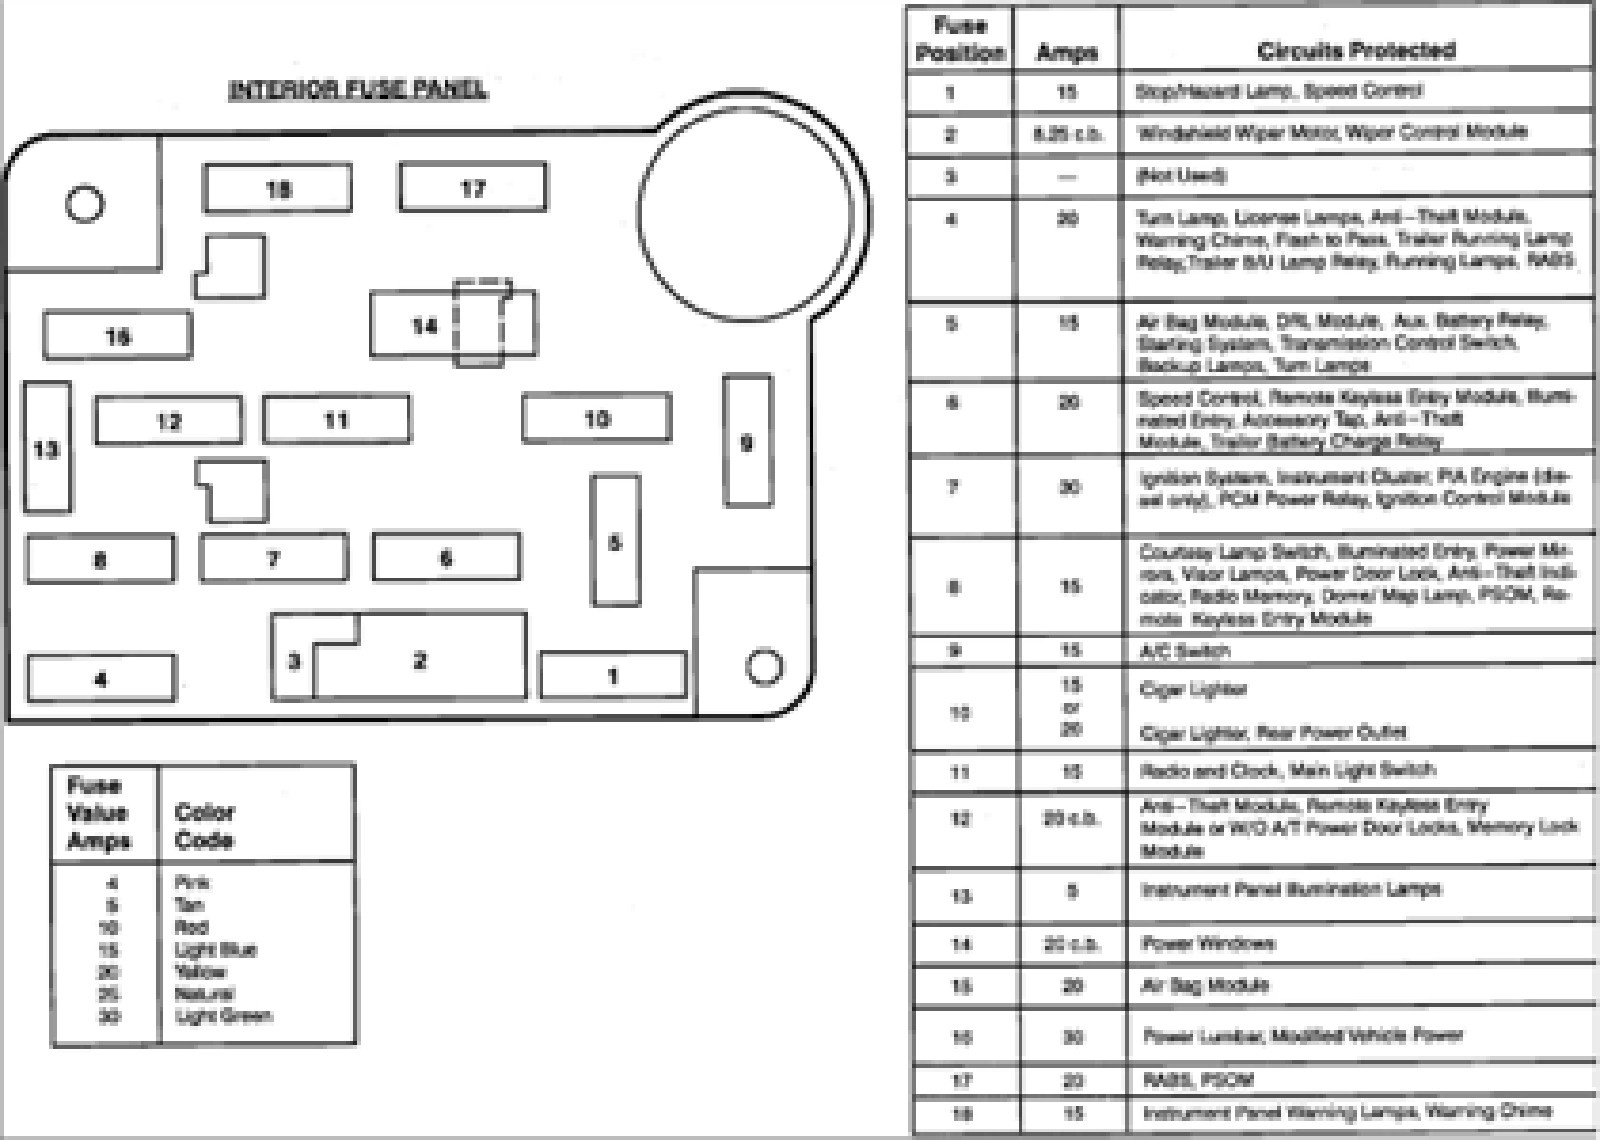 2006 ford e150 van fuse diagram free download simple wiring diagram rh  david huggett co uk 2001 ford e250 fuse panel diagram